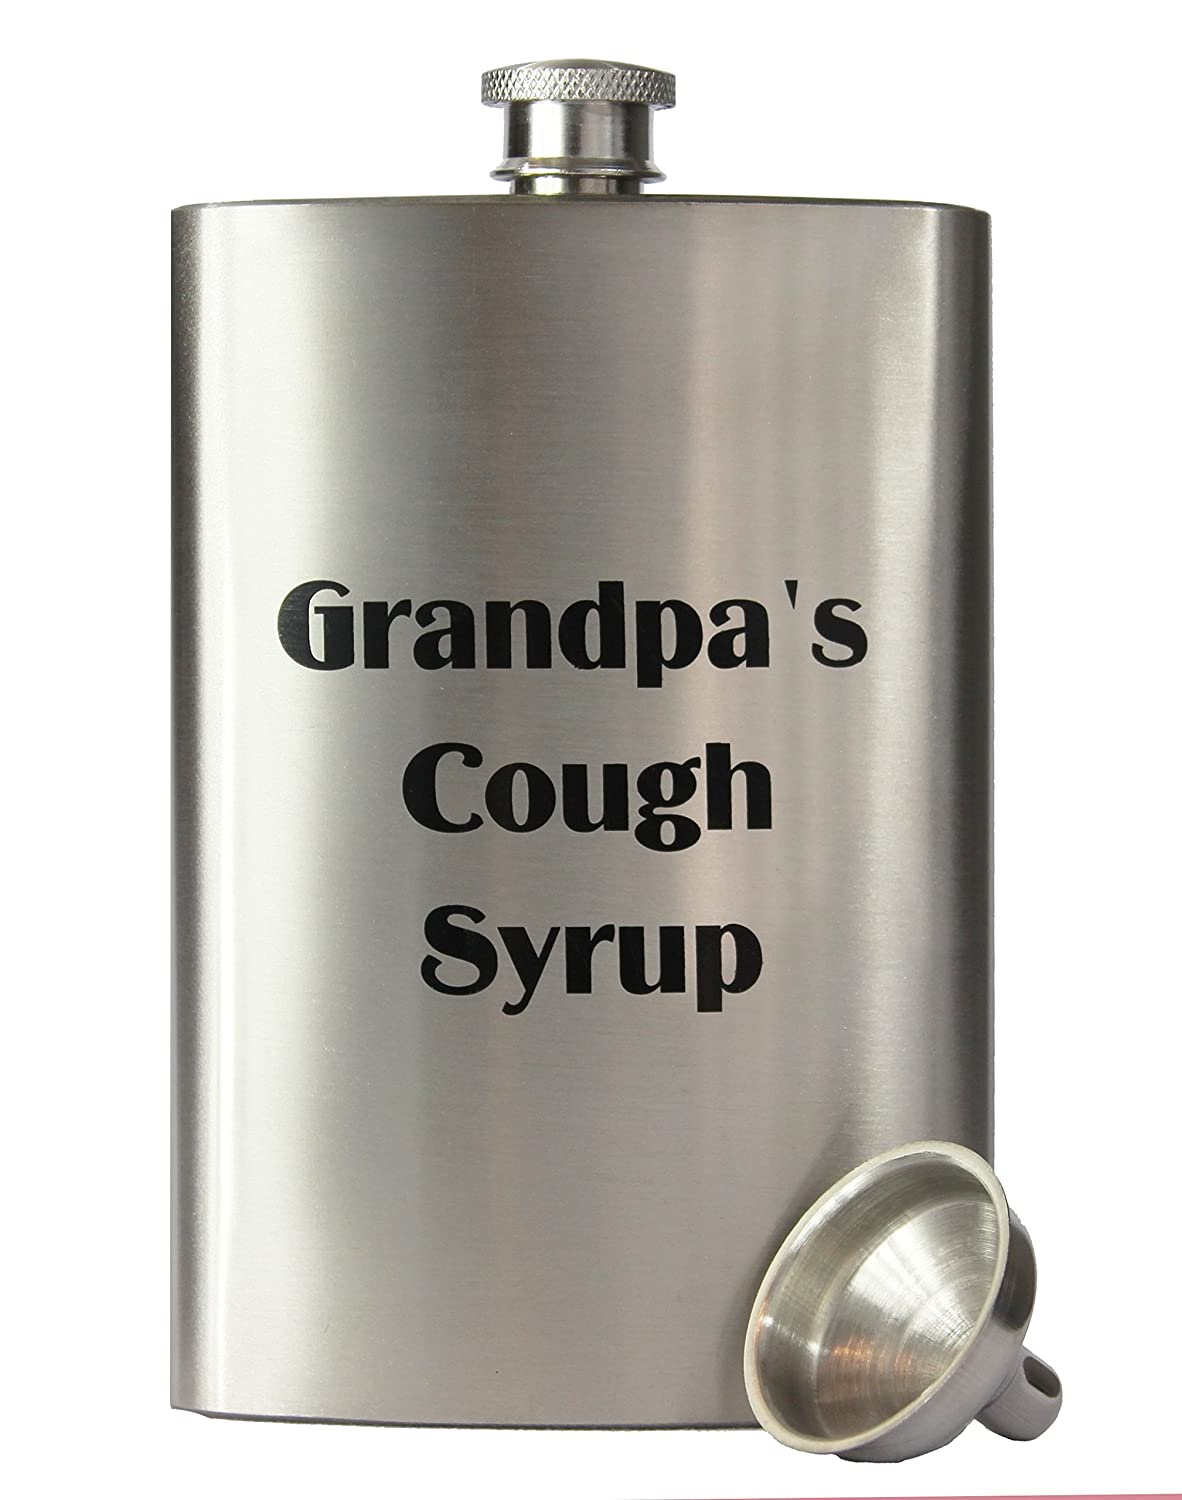 8oz ,  Grandpa's Cough Syrup : 8oz Stainless Steel Primo 18/8 #304